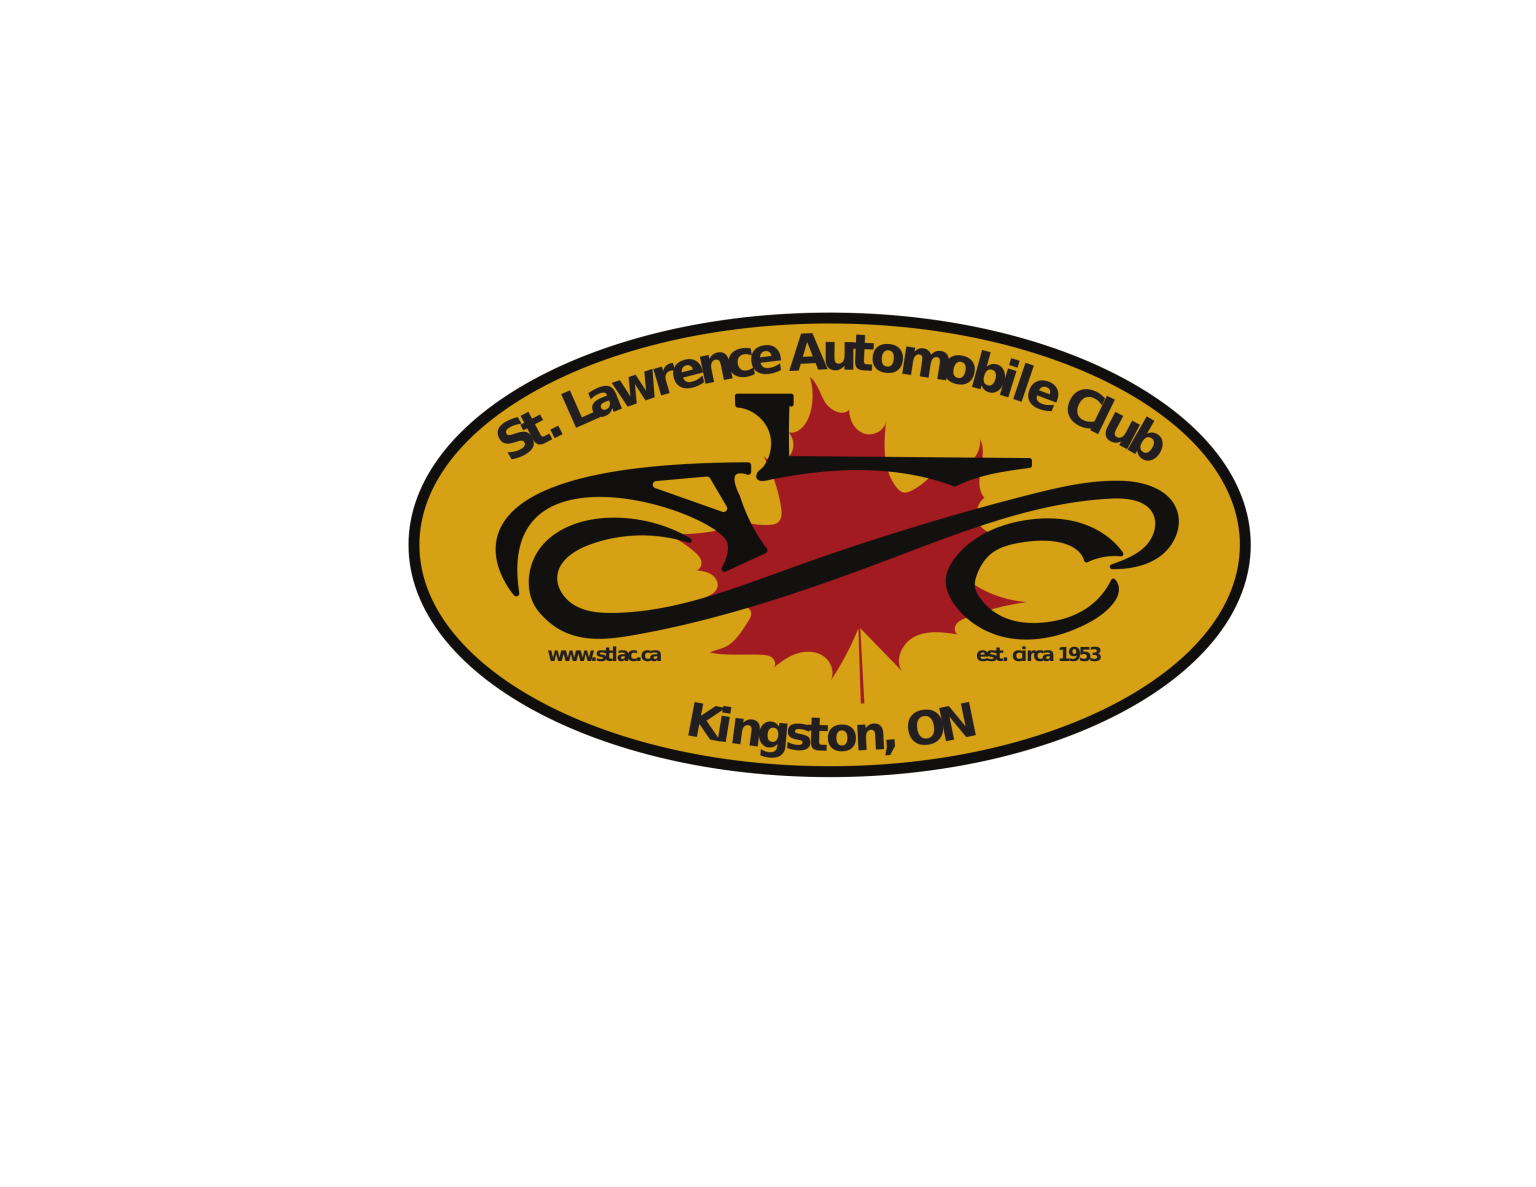 A Motorsport Group for Automobile Enthusiasts in Eastern Ontario